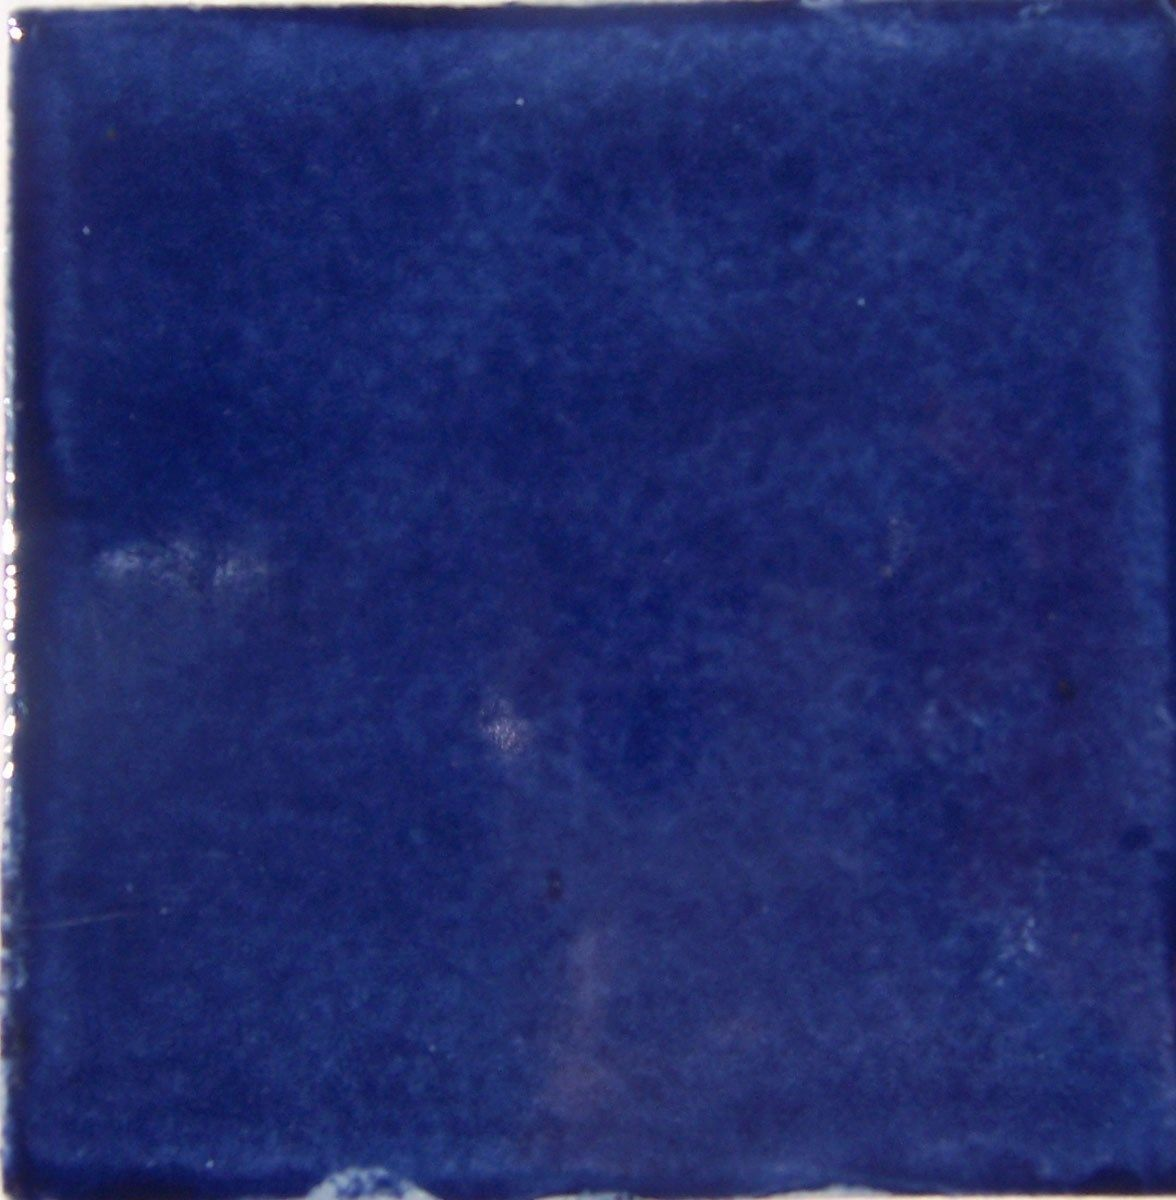 Mexican Talavera X Tile S WASHED COBALT BLUE Mexican Tiles - Cobalt blue ceramic tile 4x4